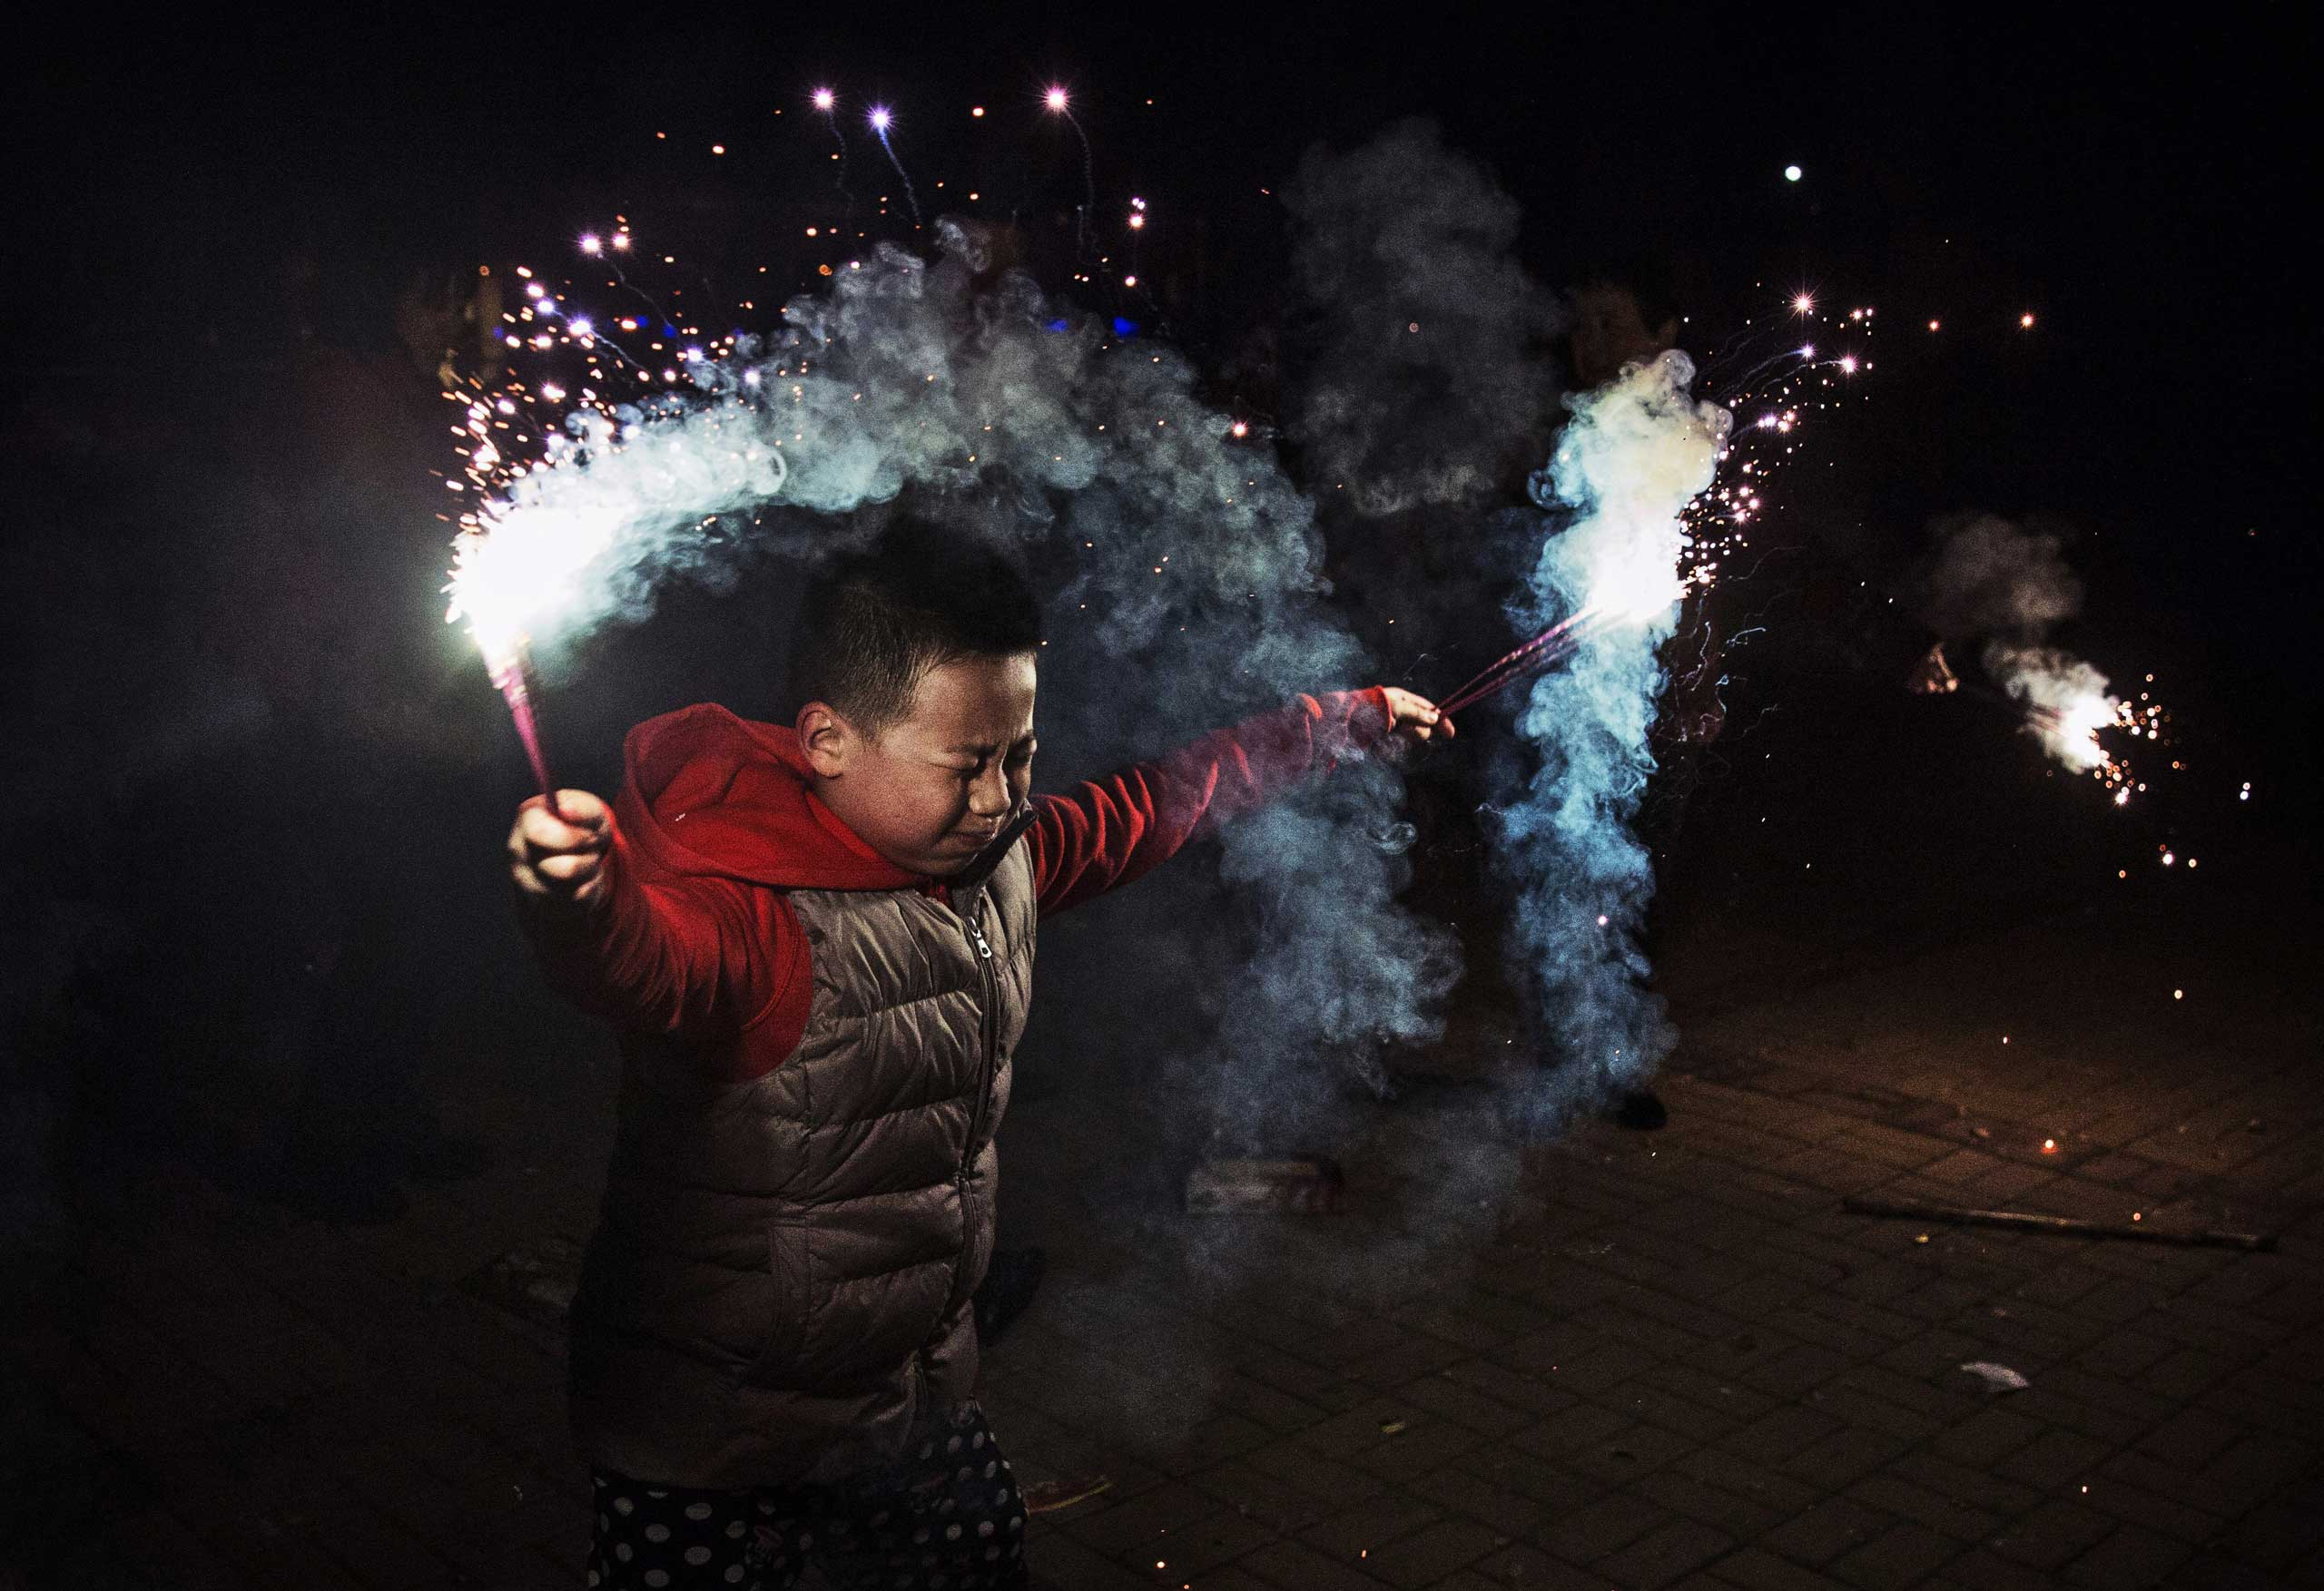 A boy uses sparklers during celebrations of the Lunar New Year early on Feb. 19, 2015 in Beijing.